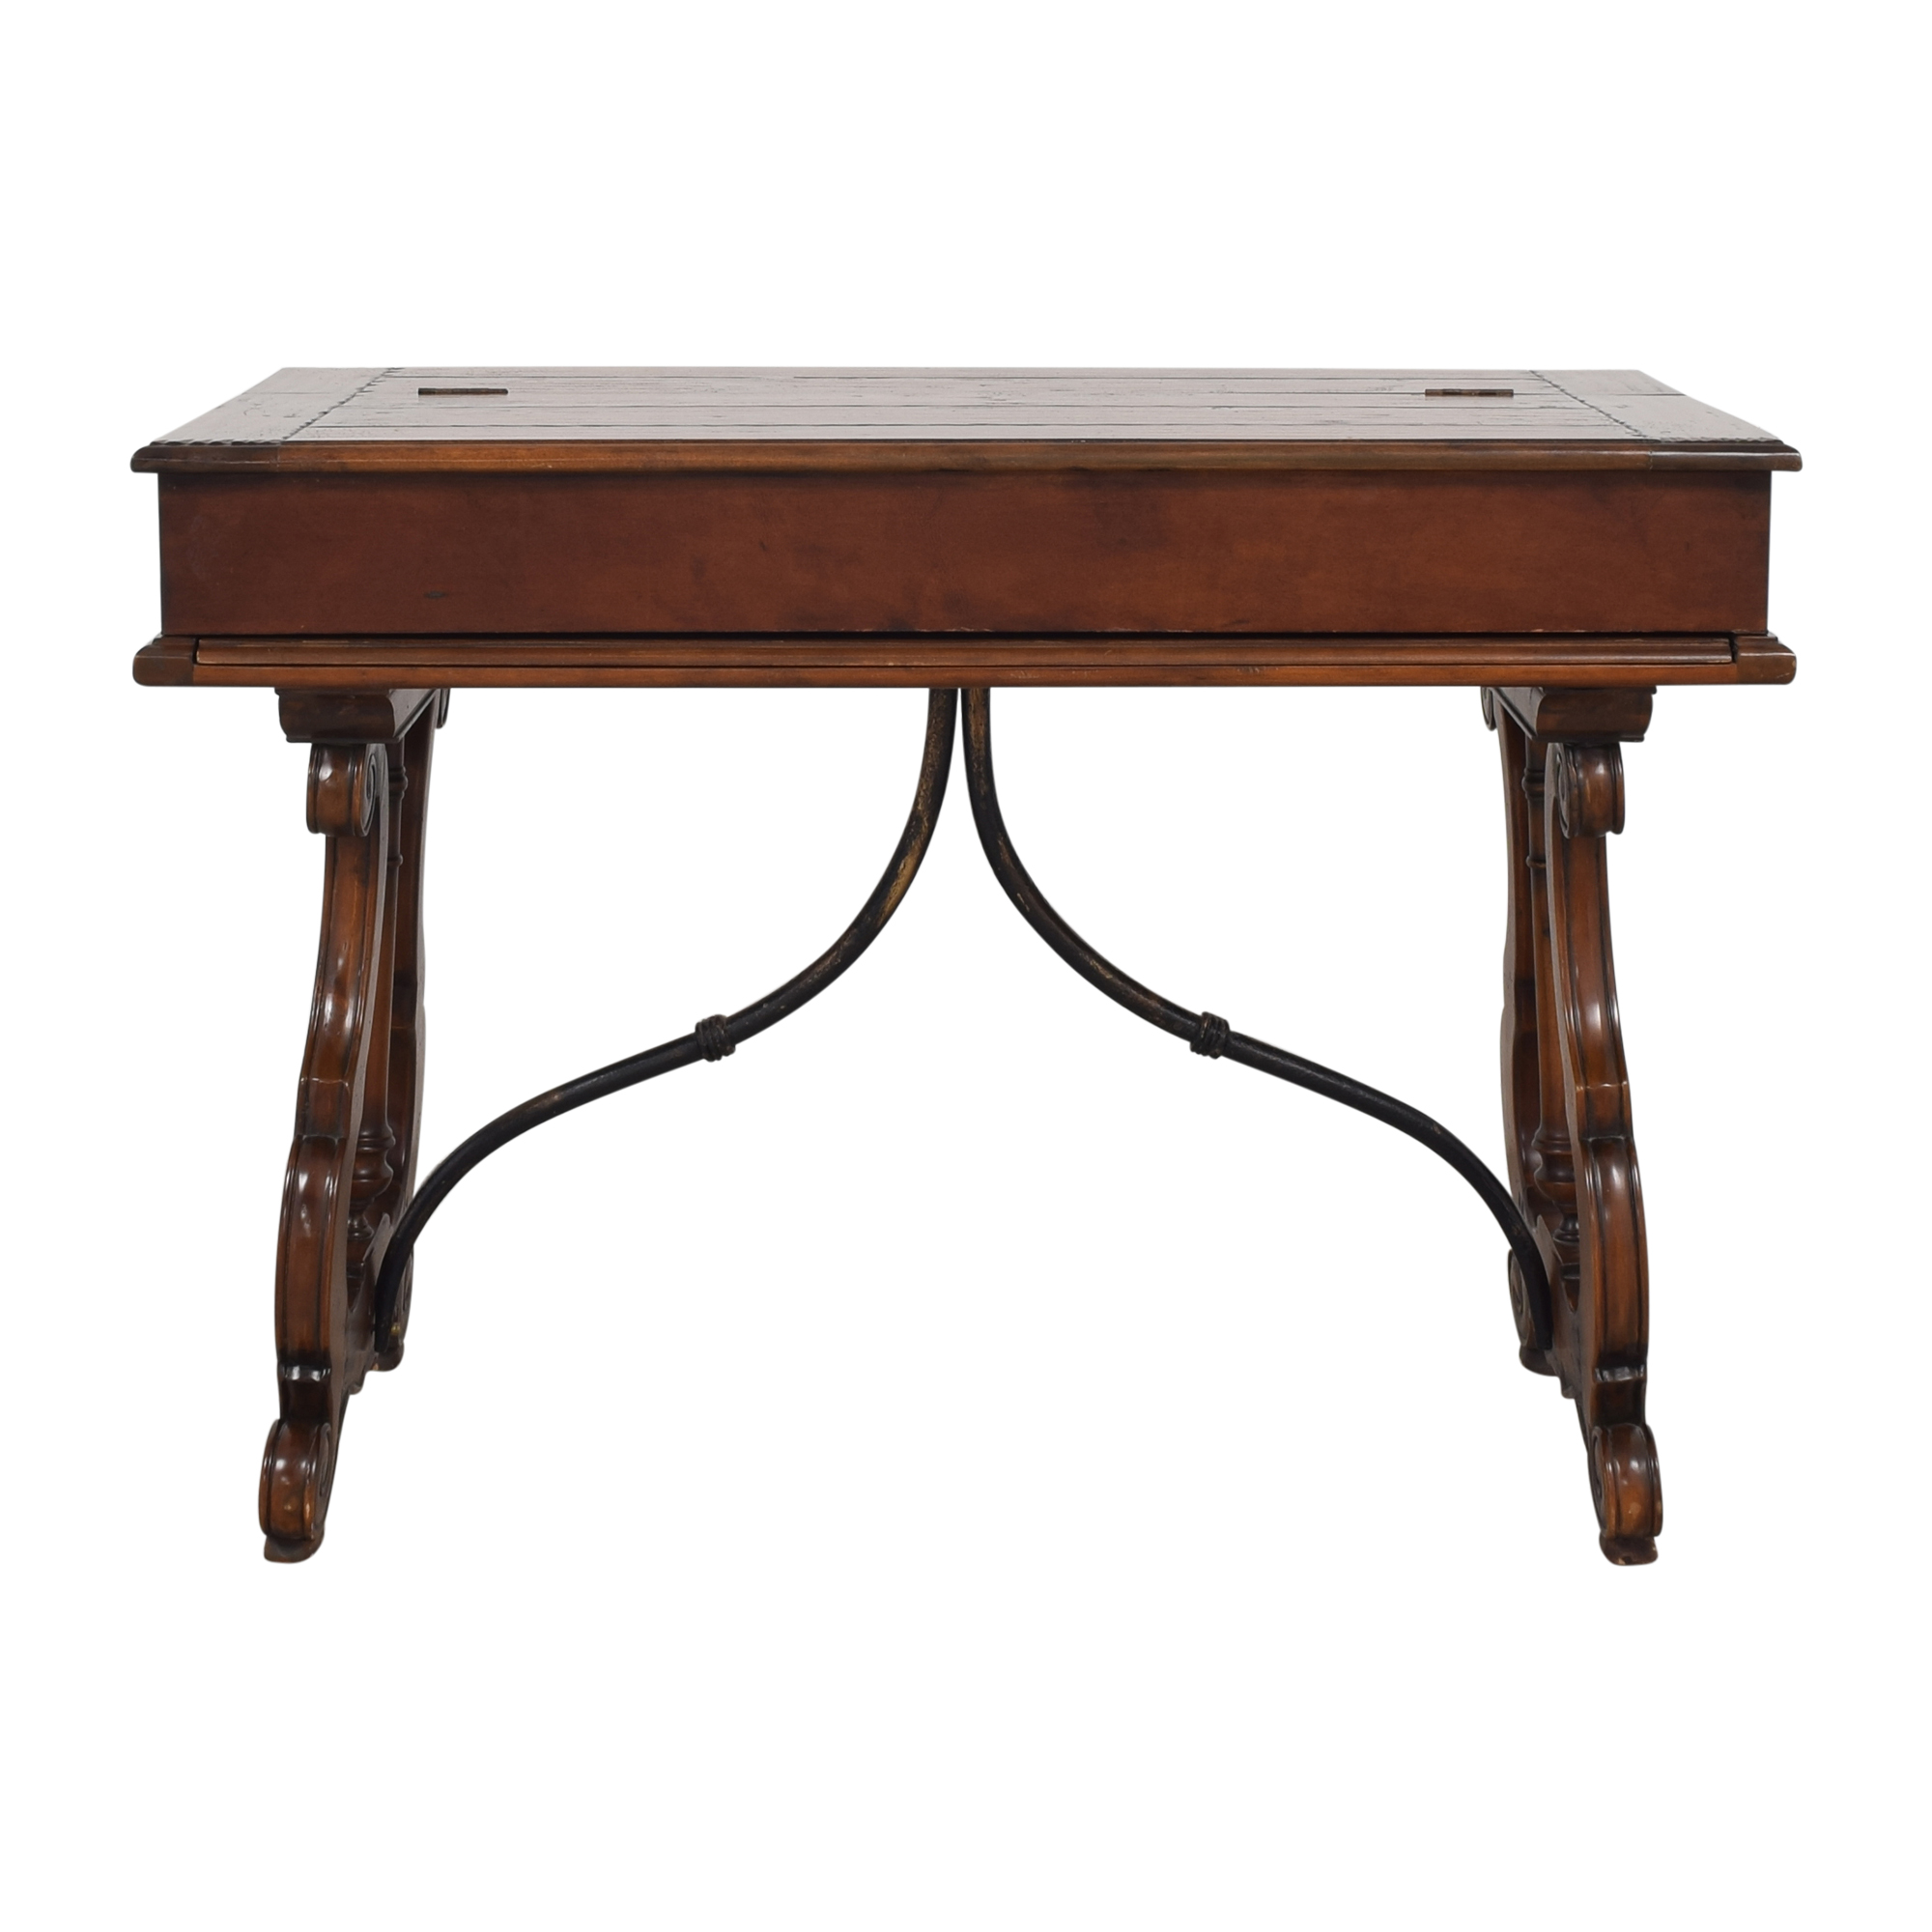 Drexel Heritage Flip Top Desk / Tables